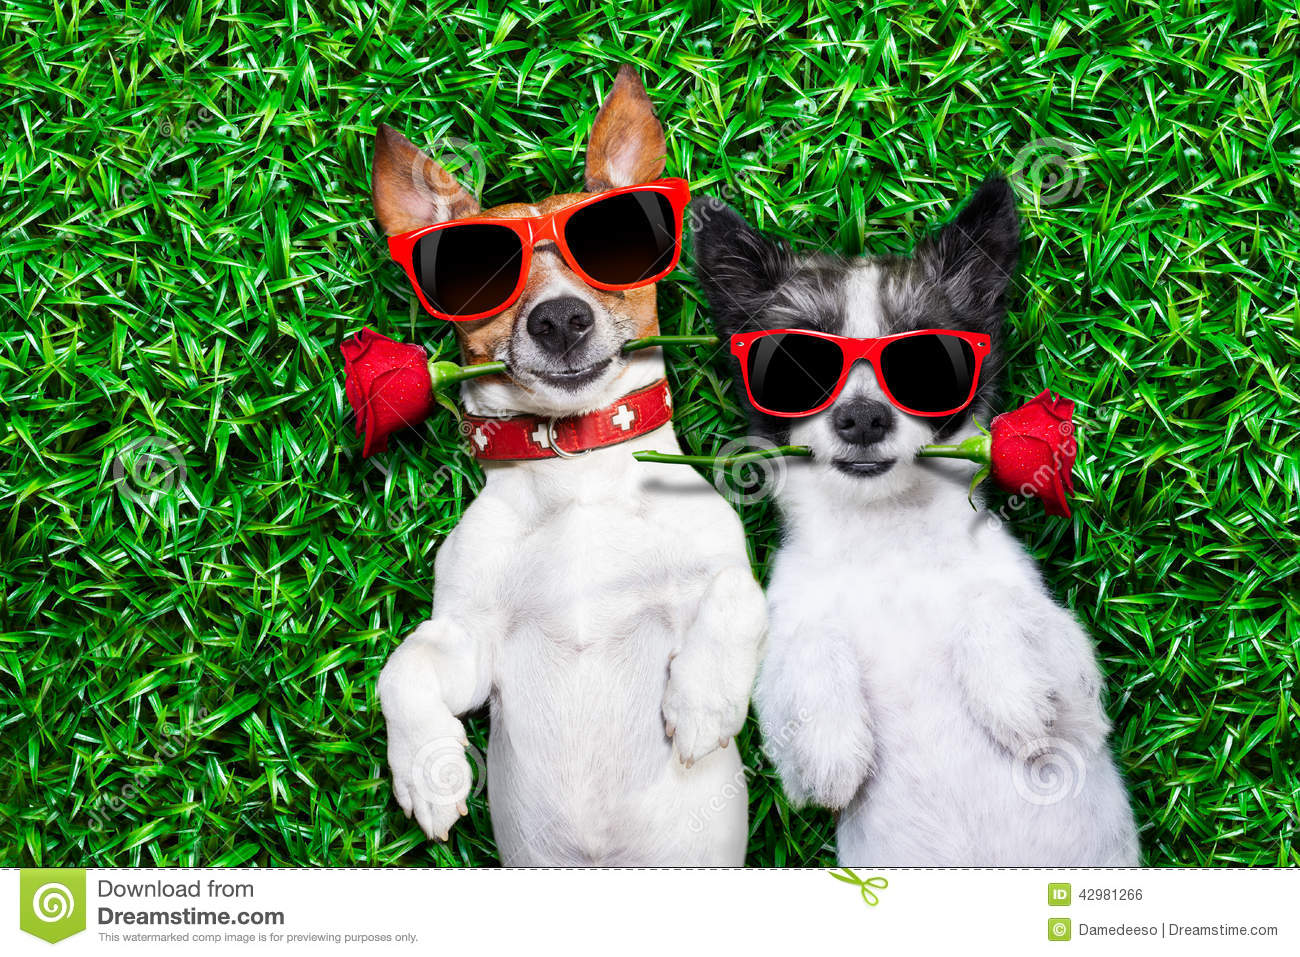 Must Love Dogs Wallpaper : Love couple Of Dogs Stock Photo - Image: 42981266